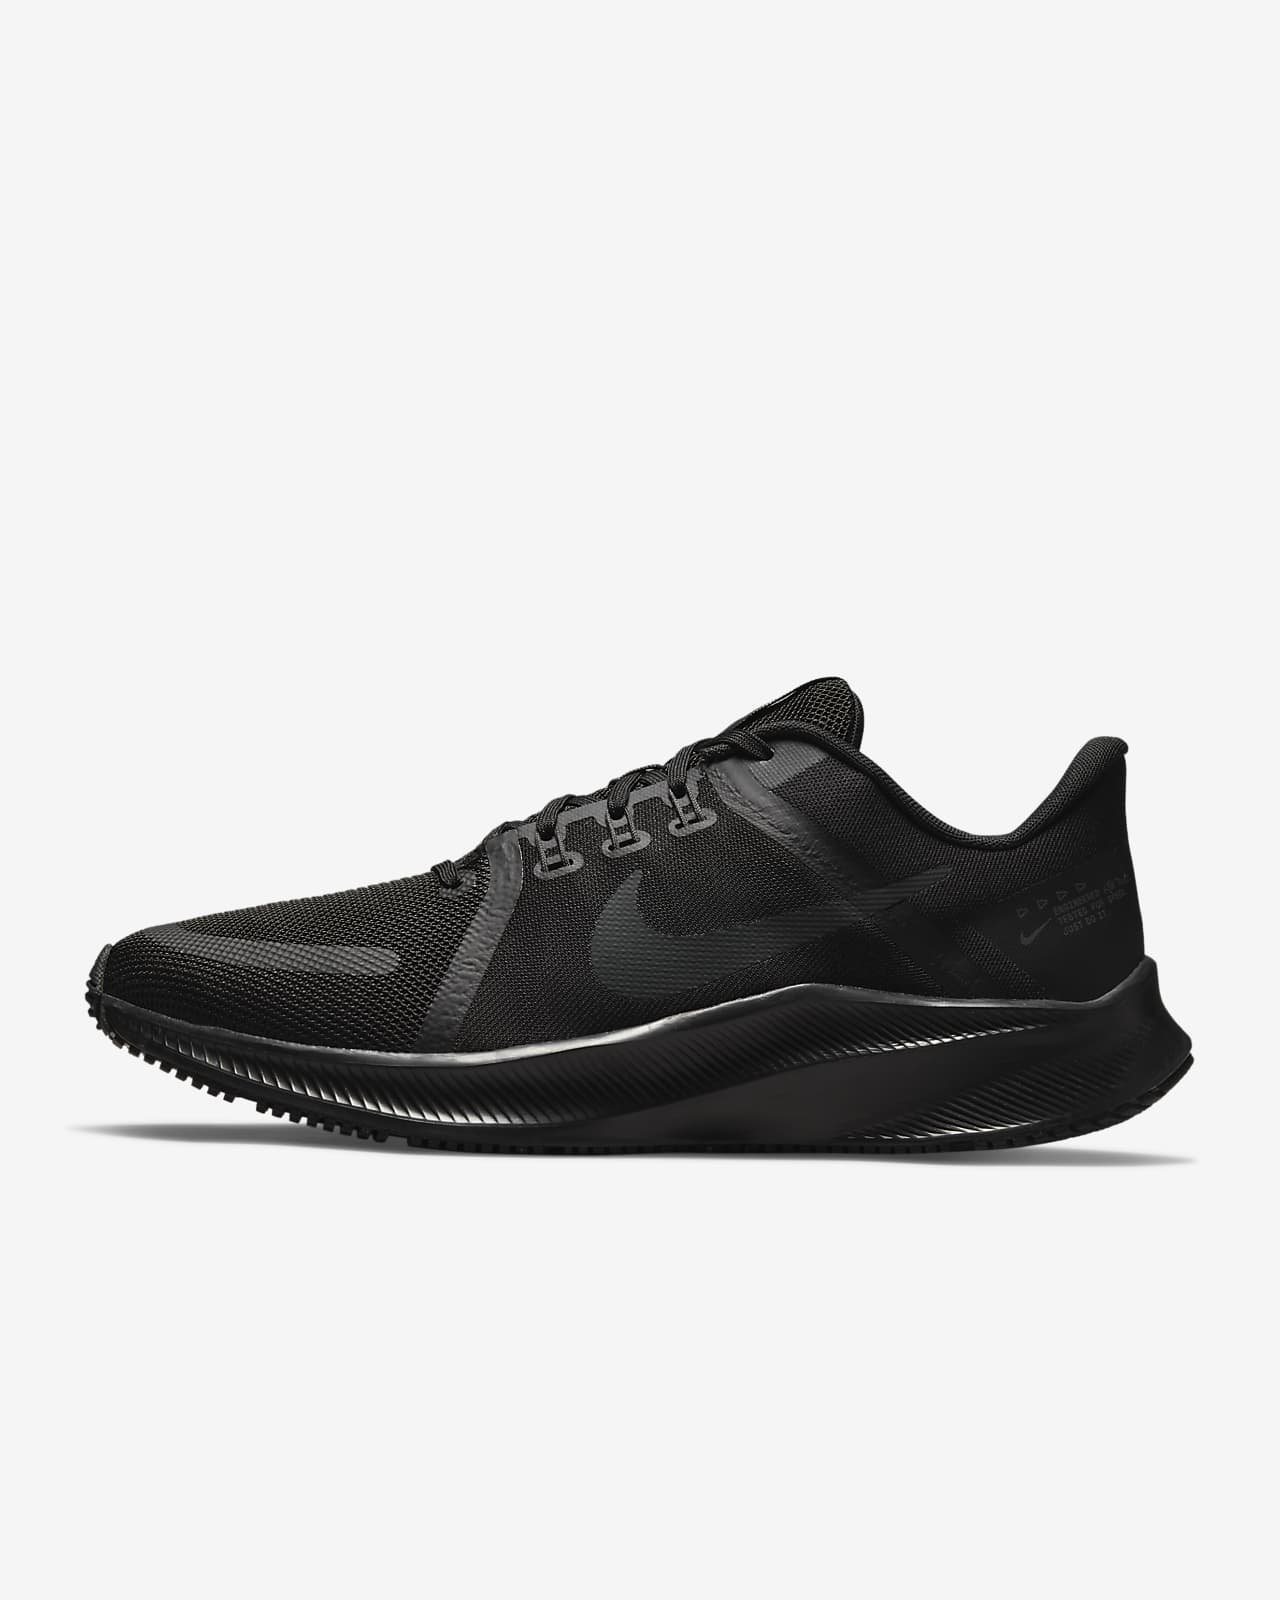 Chaussure de running Nike Quest 4 pour Homme. Nike LU